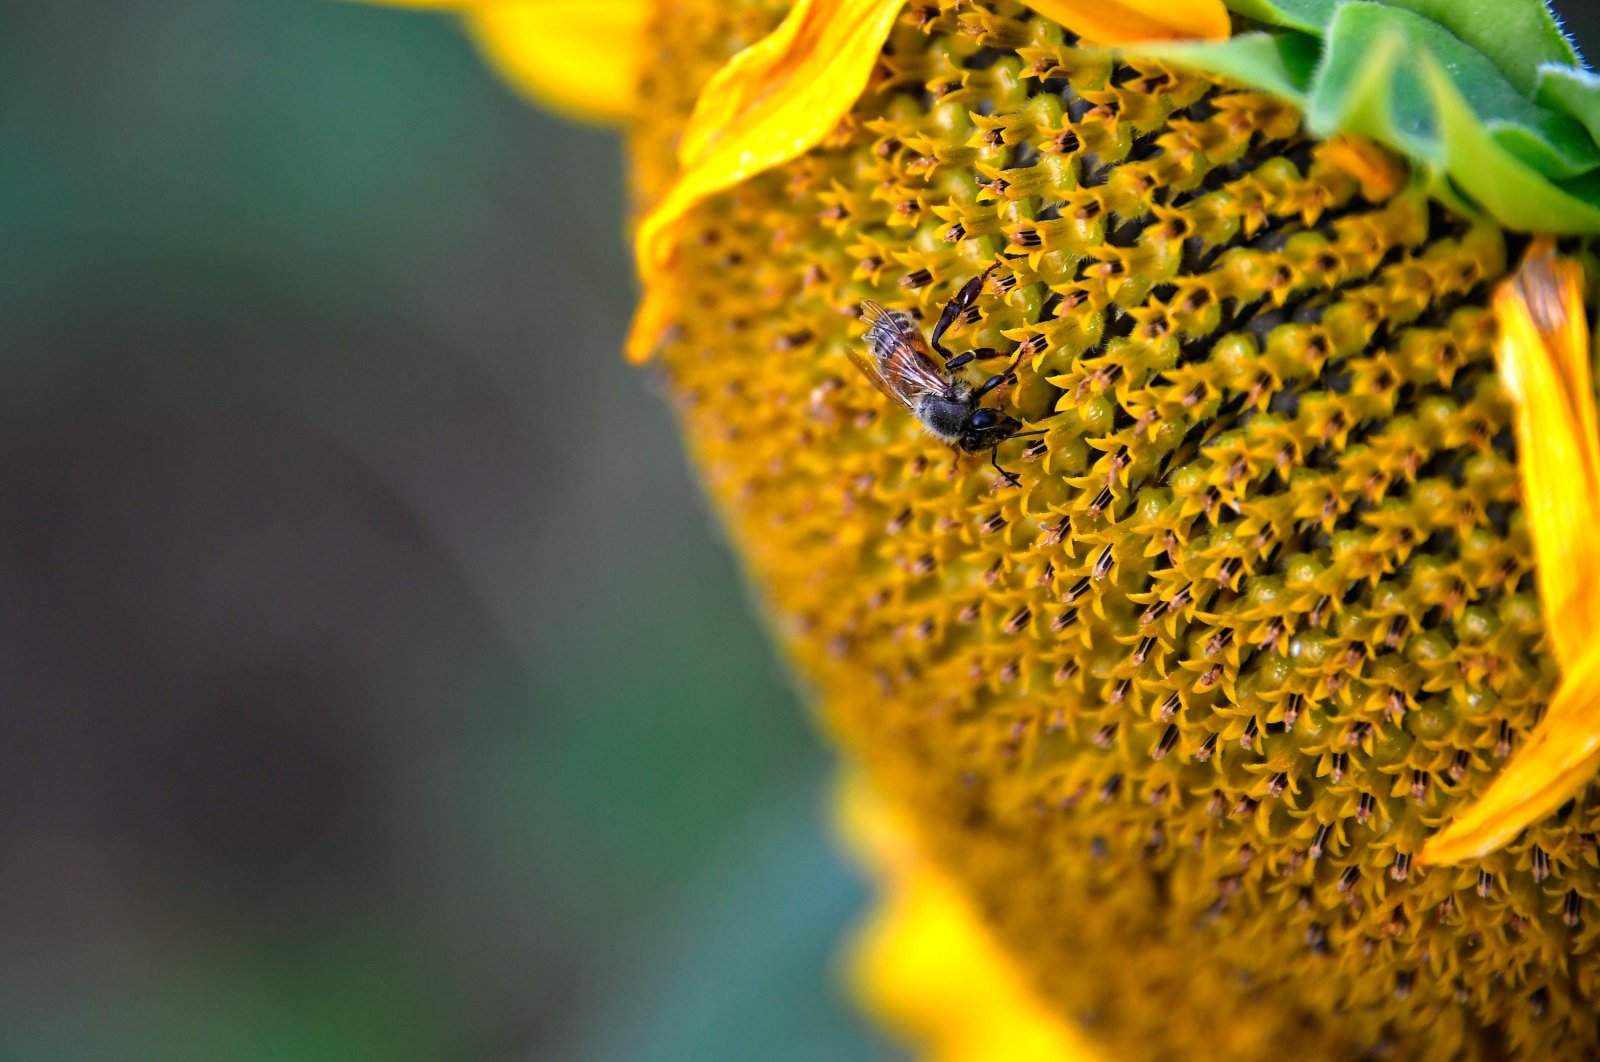 A bee gathers pollen from a sunflower in a field in Calmont, southwestern France, Aug. 4, 2020. (AFP Photo)